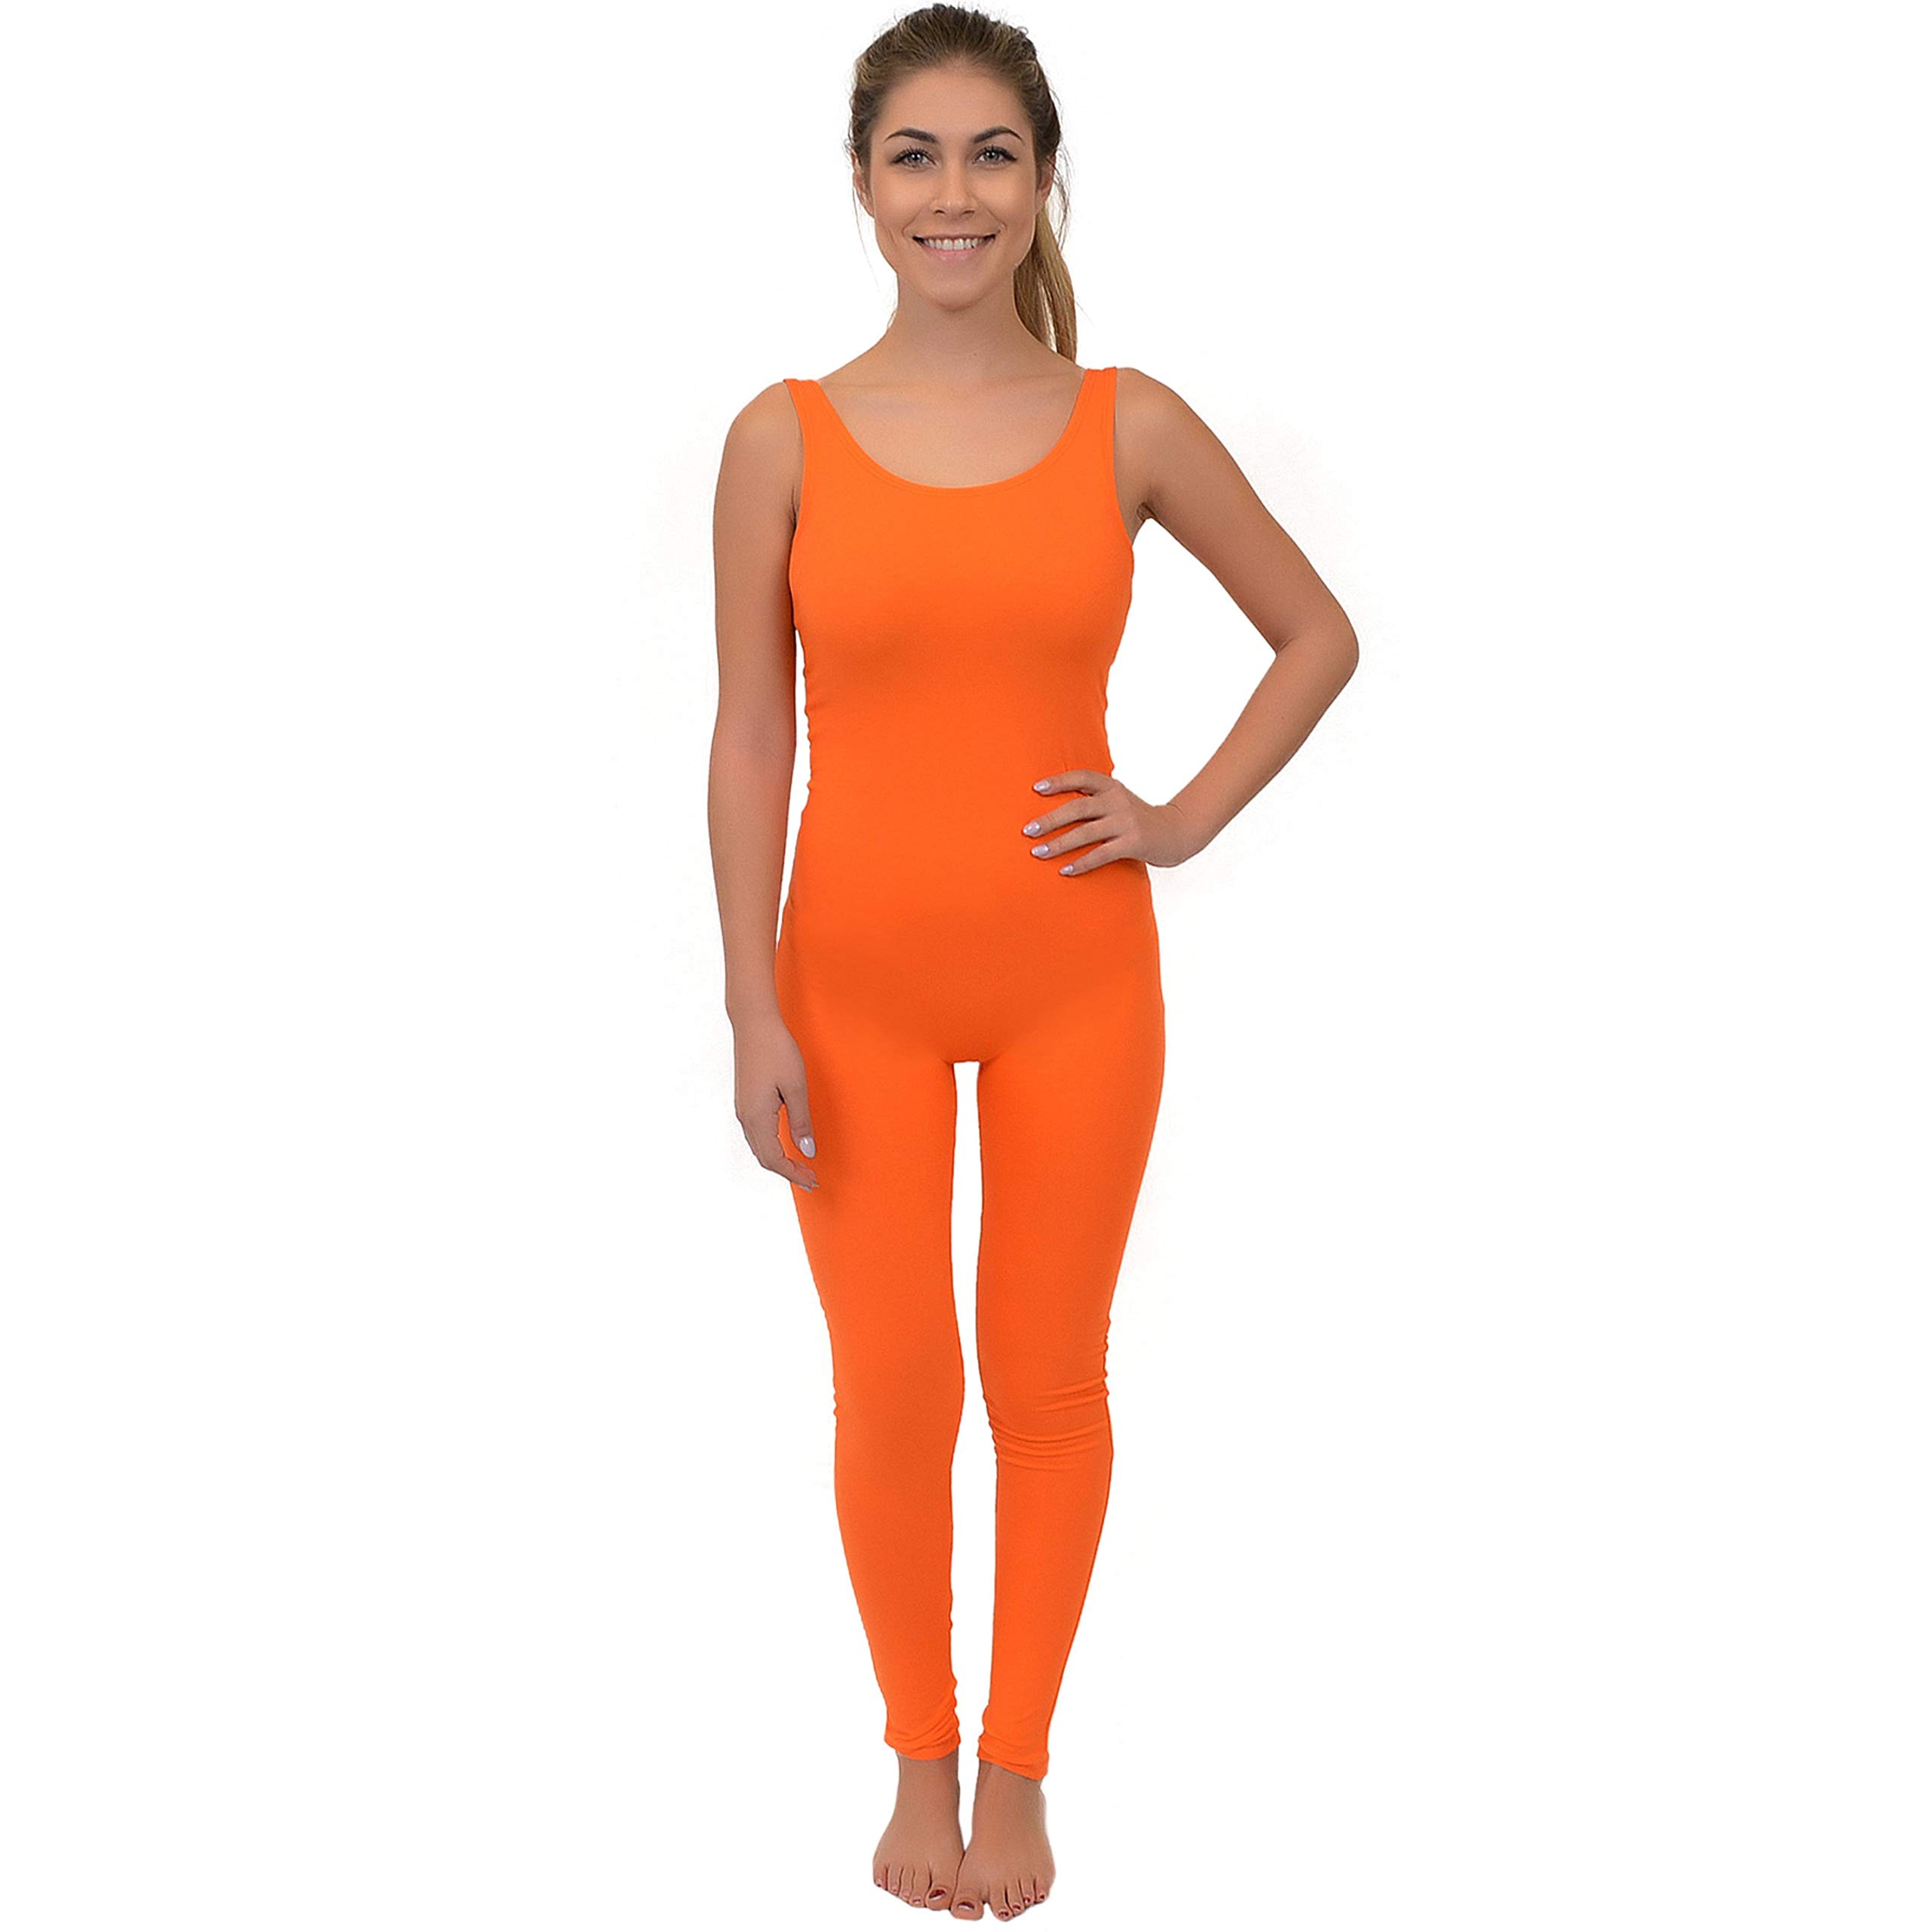 Stretch is Comfort Women's Comfortable Cotton Tank Unitard Orange 3X by Stretch is Comfort